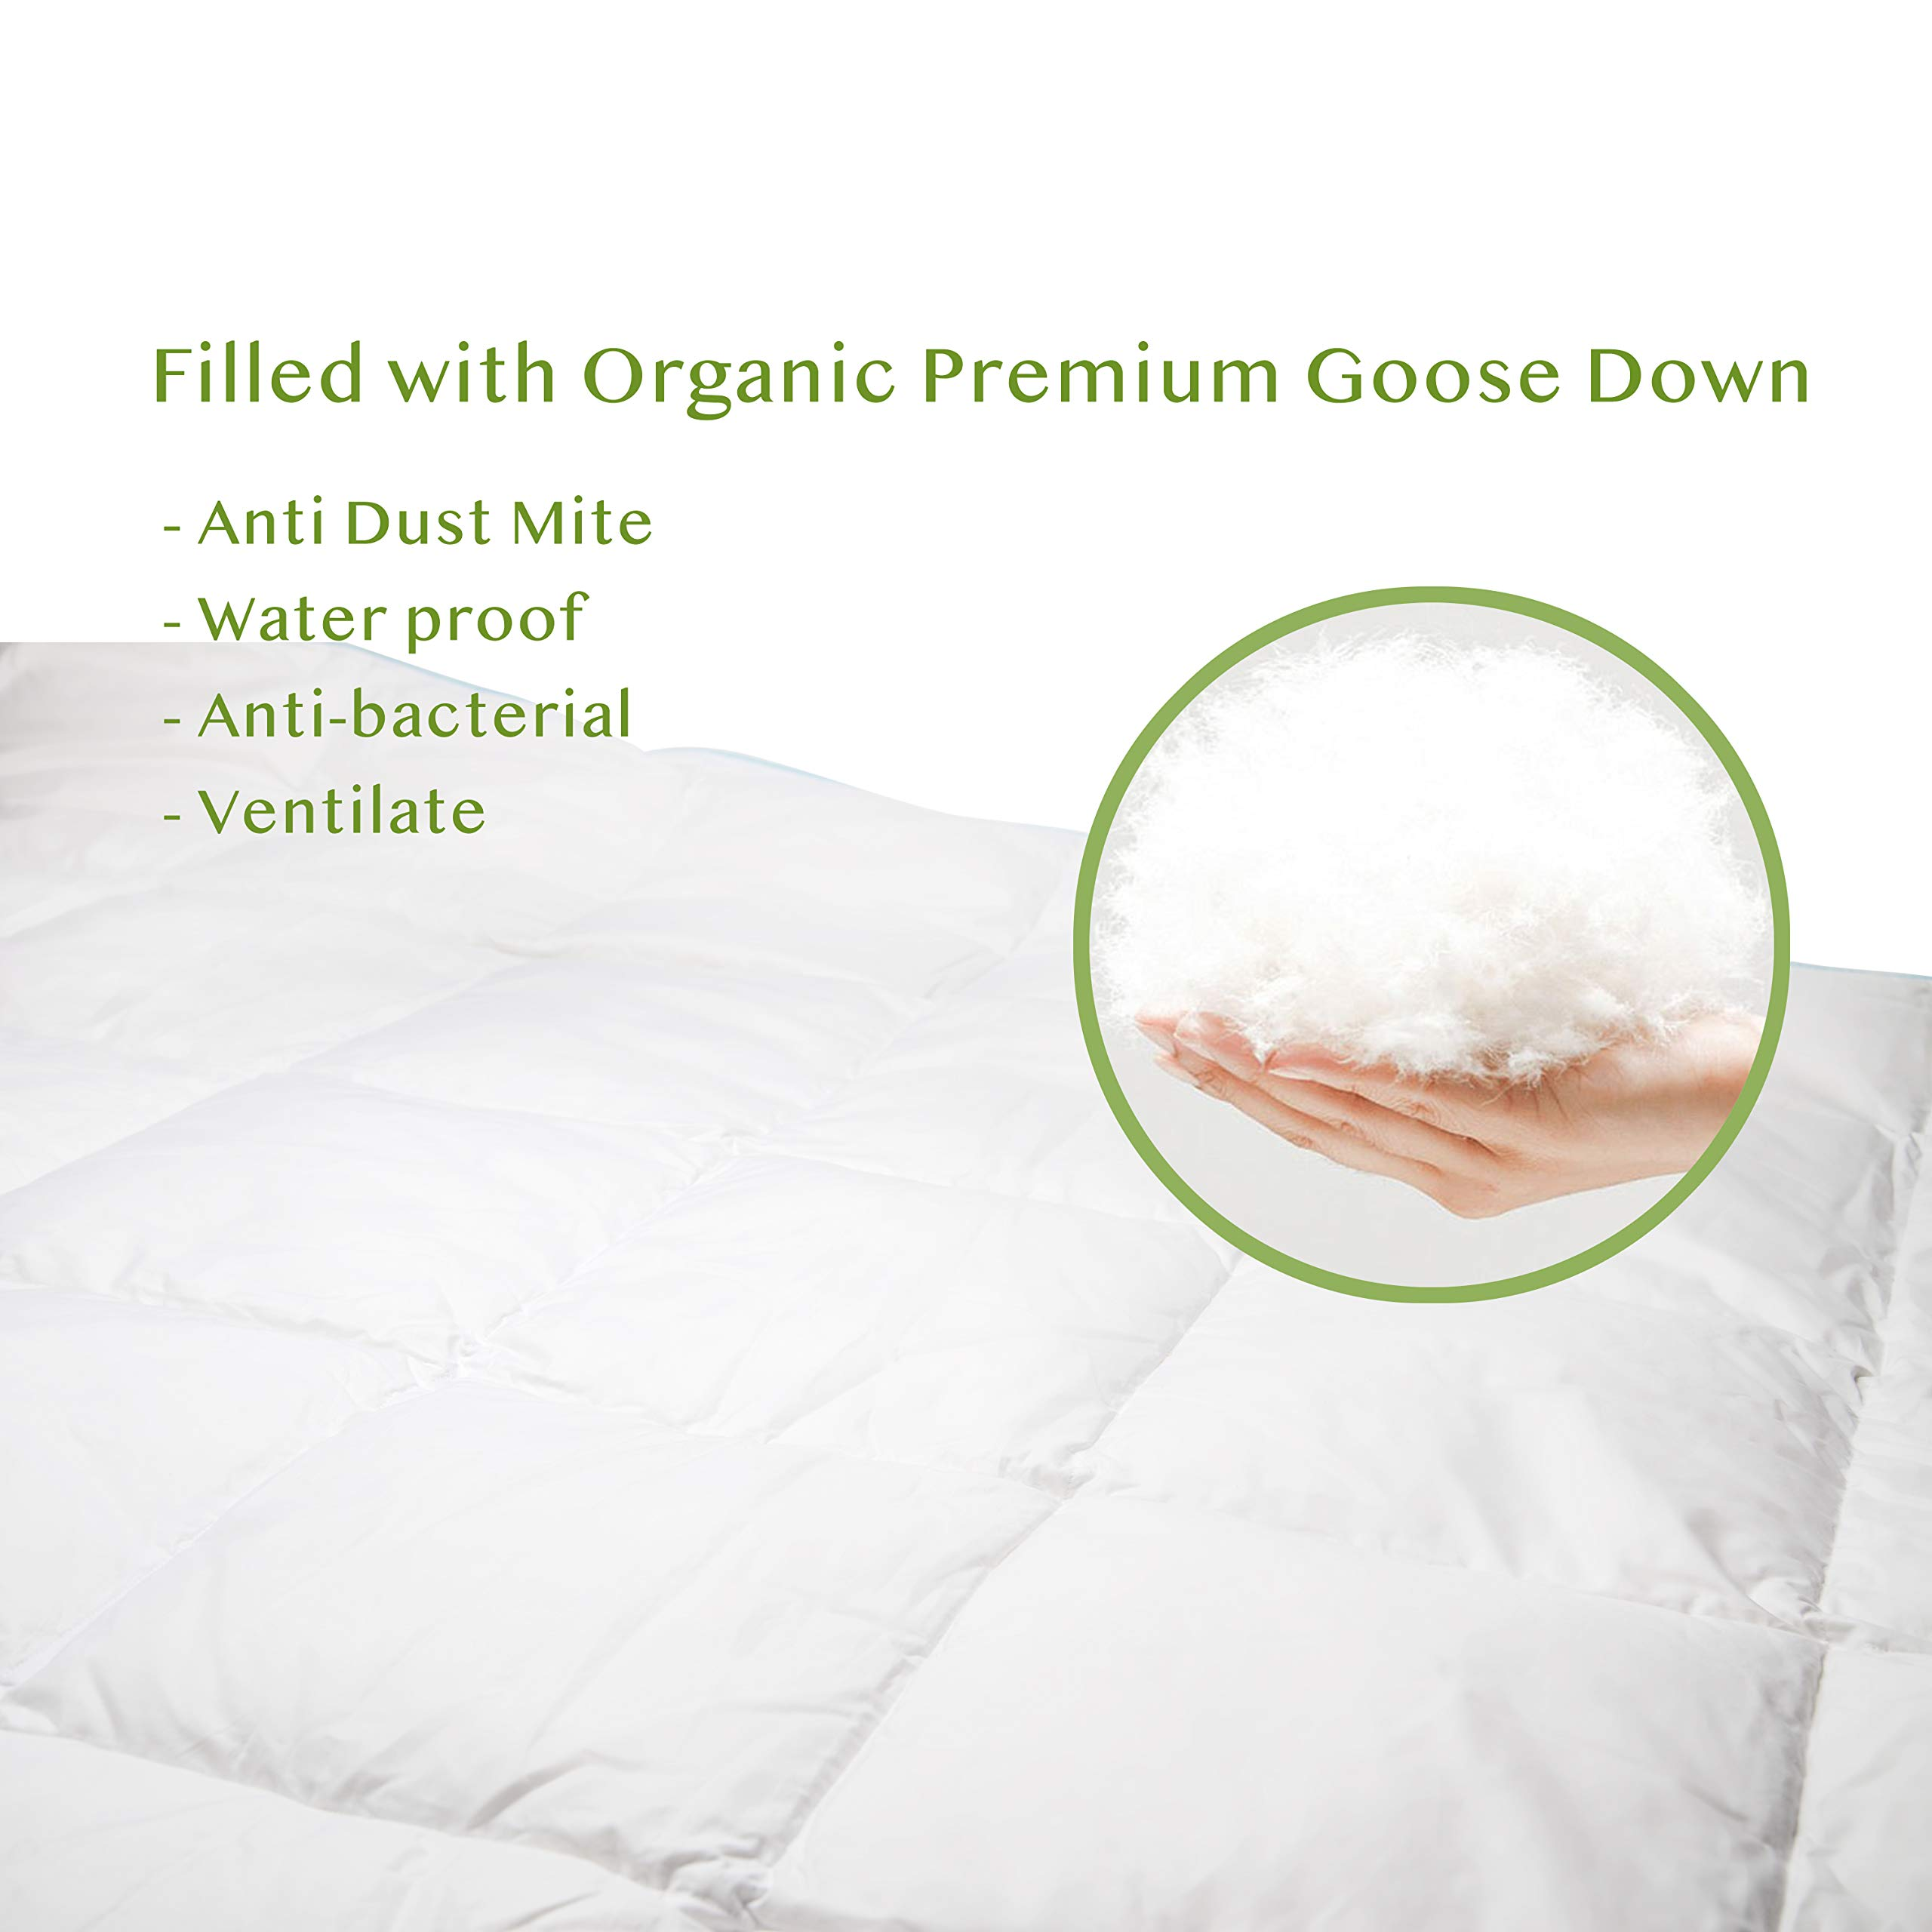 Cucuun Summer Lightweight Goose Down Comforter King Size Duvet Insert Solid White 1200 Thread Count 750+ Fill Power 100% Egyptian Cotton Shell Hypo-allergenic Down by Cucuun (Image #6)